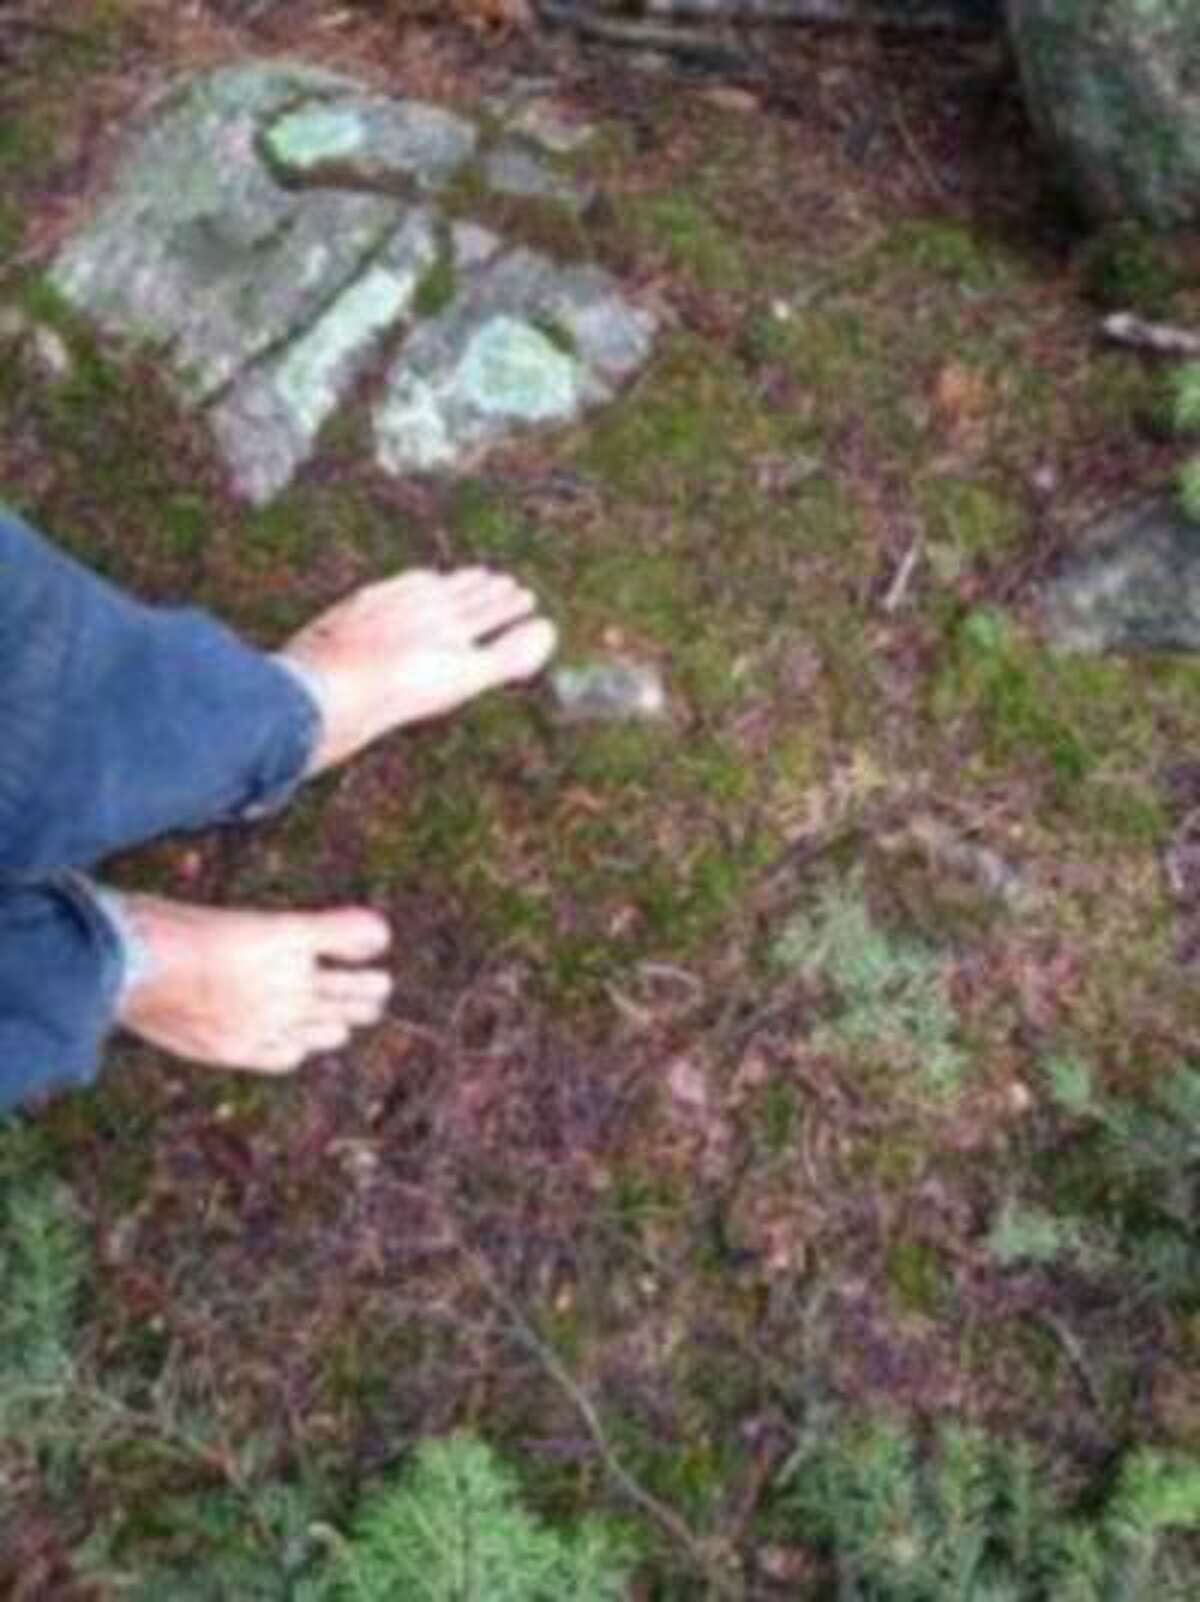 Do these feet look stressed? Staff writer Douglas Brown could have walked all day on moss, granite and pine needles. (Douglas Brown/The Denver Post)